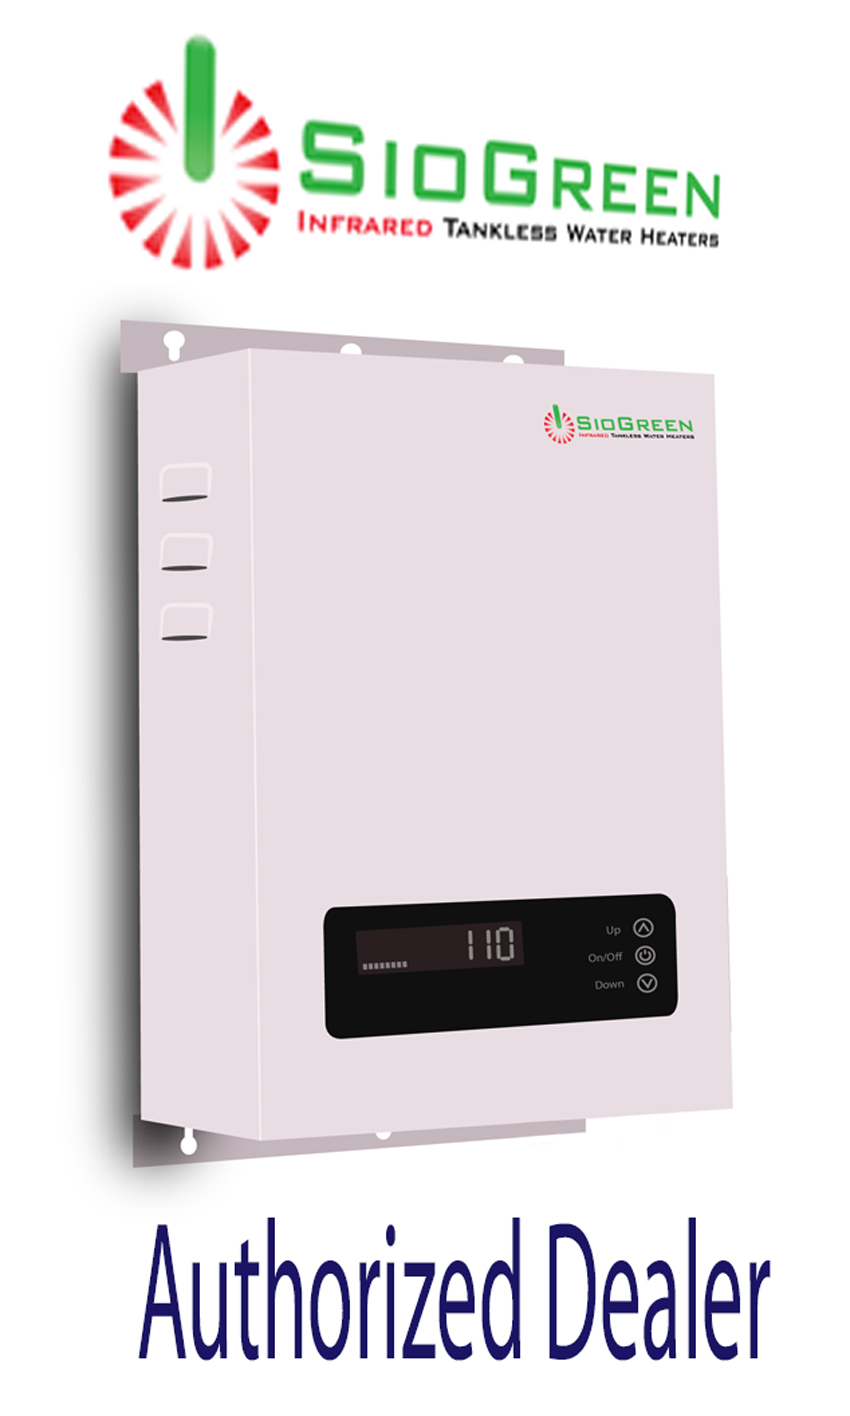 SioGreen SIO18 Contractor Series Tankless Water Heater